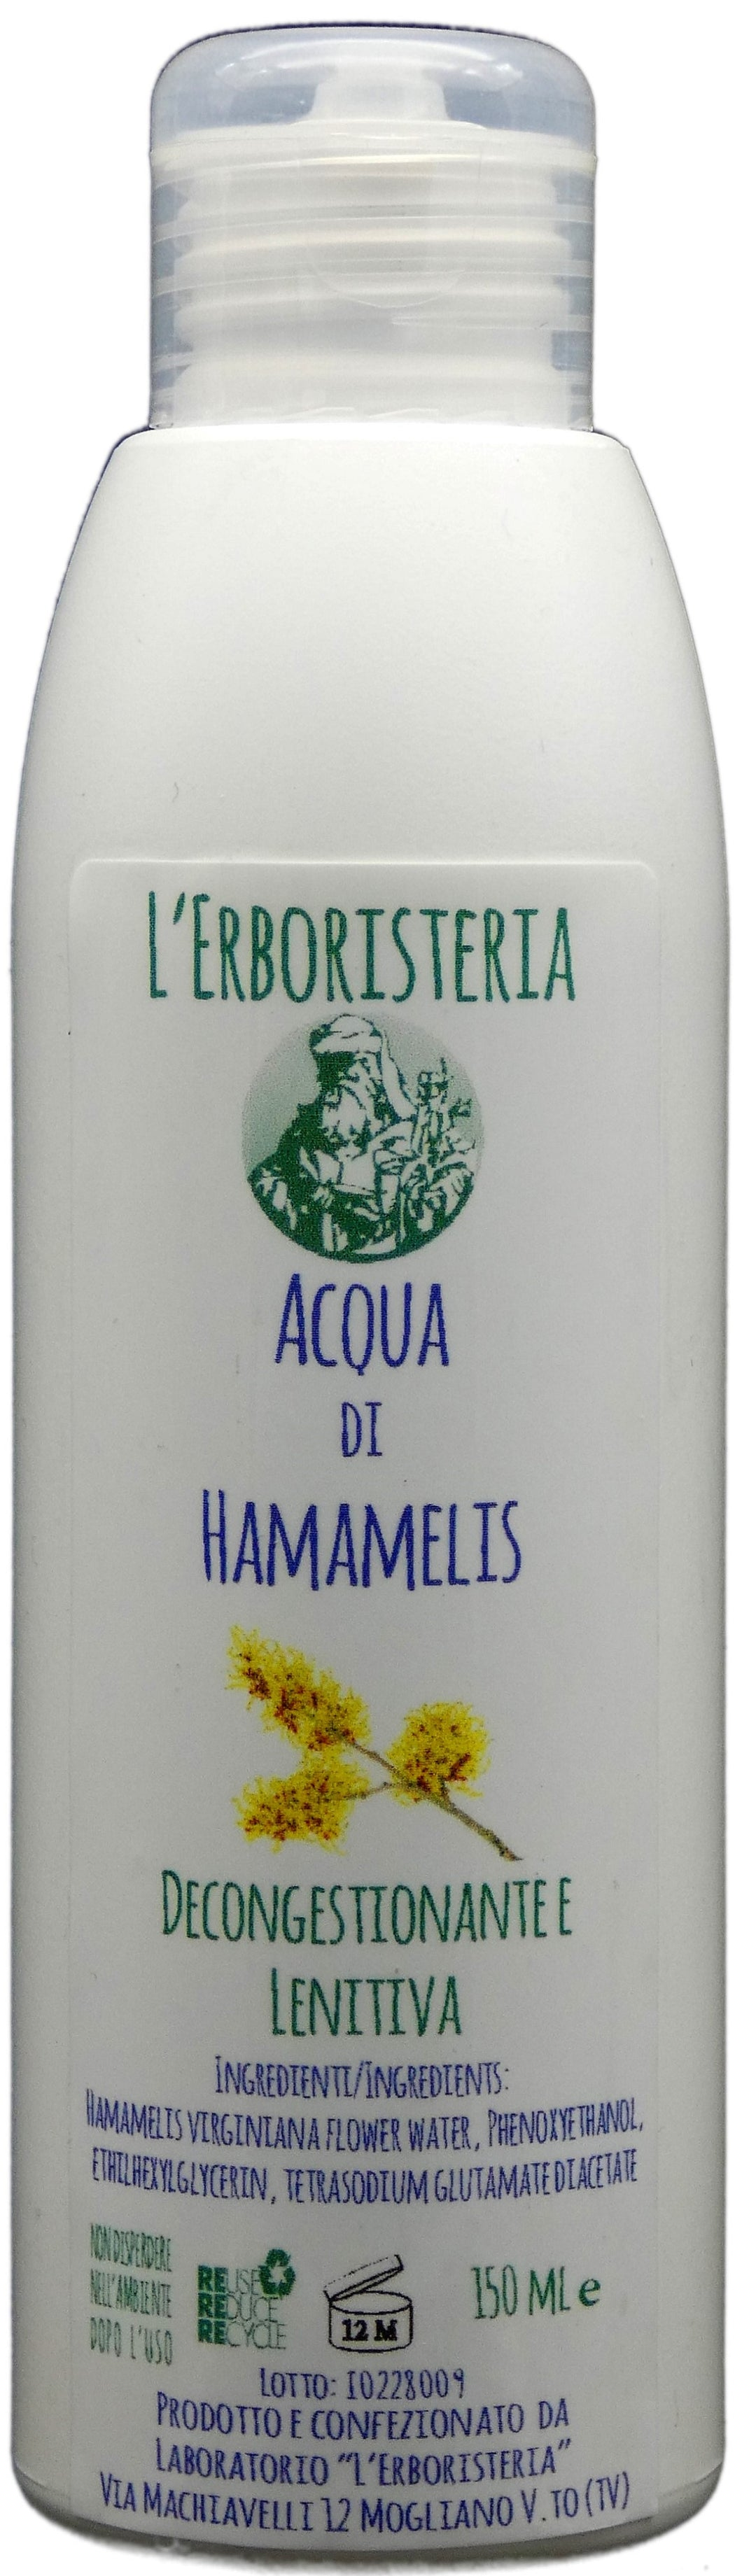 Acqua di  Hamamelis 150 ml